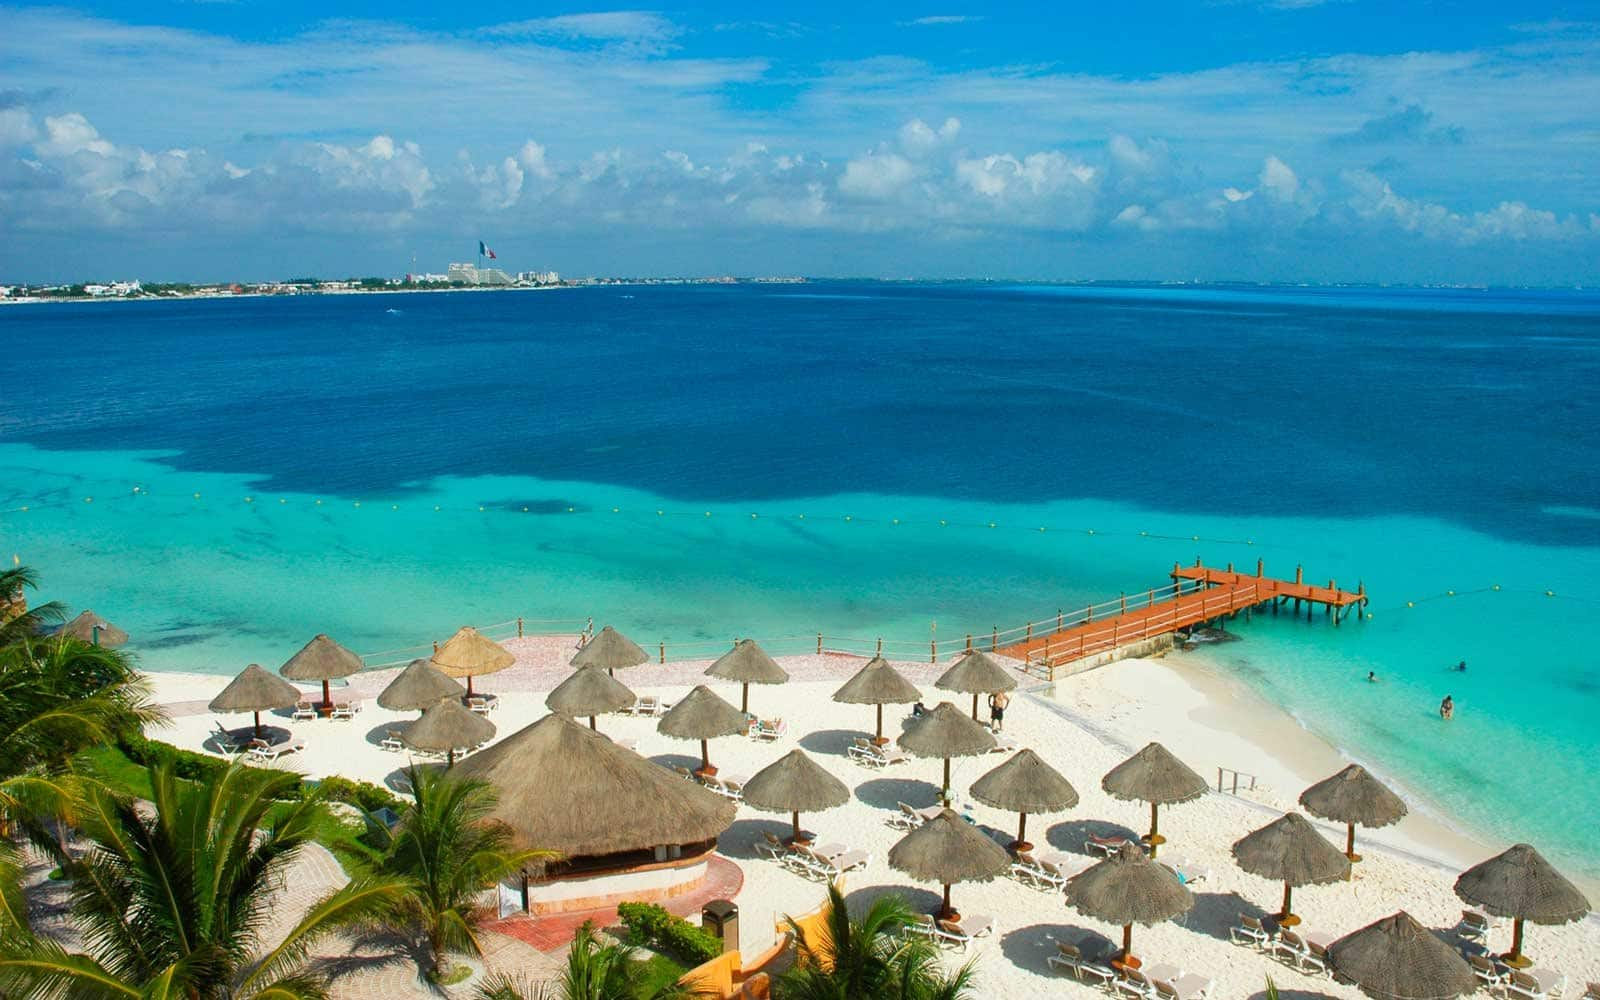 Cleveland OH to Cancun Mexico $166 RT Airfares on American Airlines BE (Travel November - February 2021)